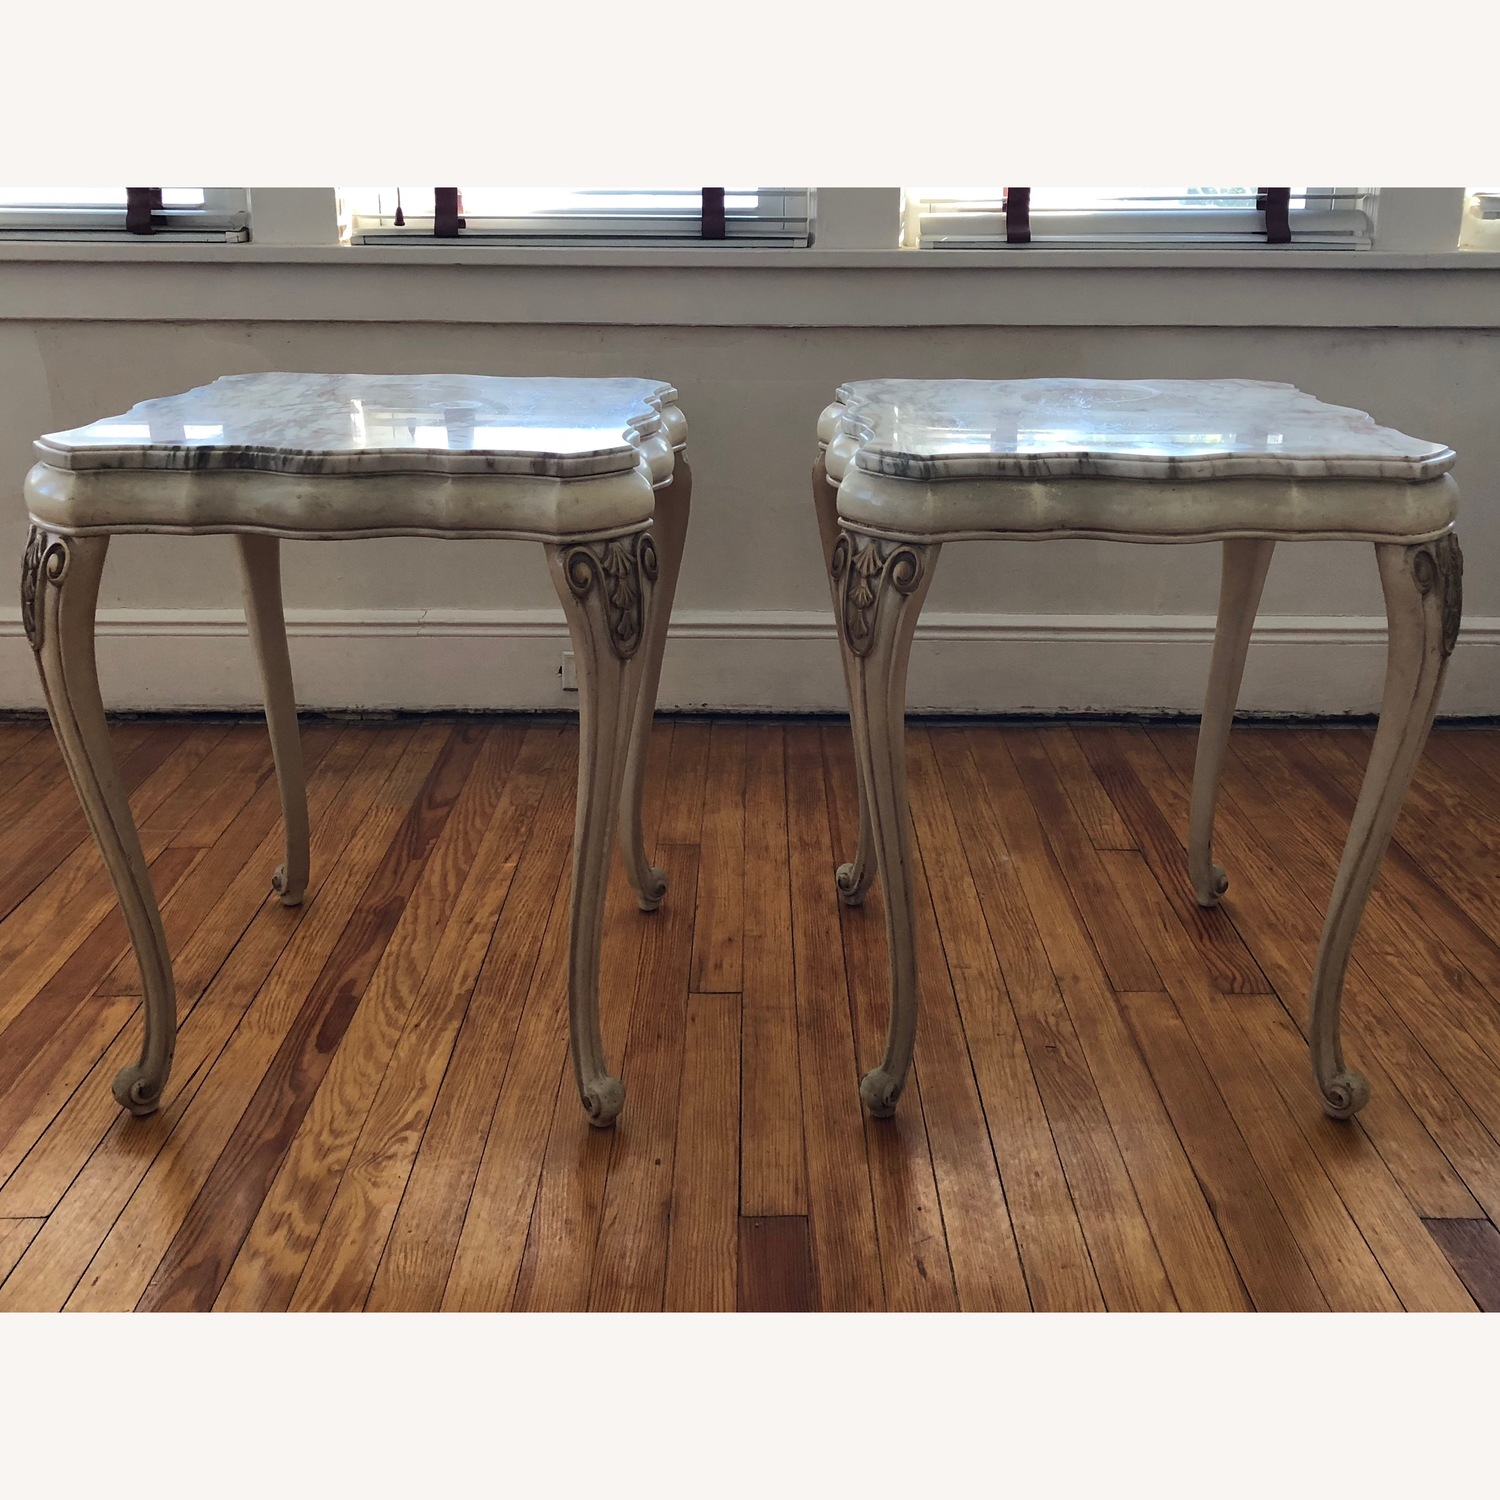 Italian 5 Piece Marble Top Tables - image-5